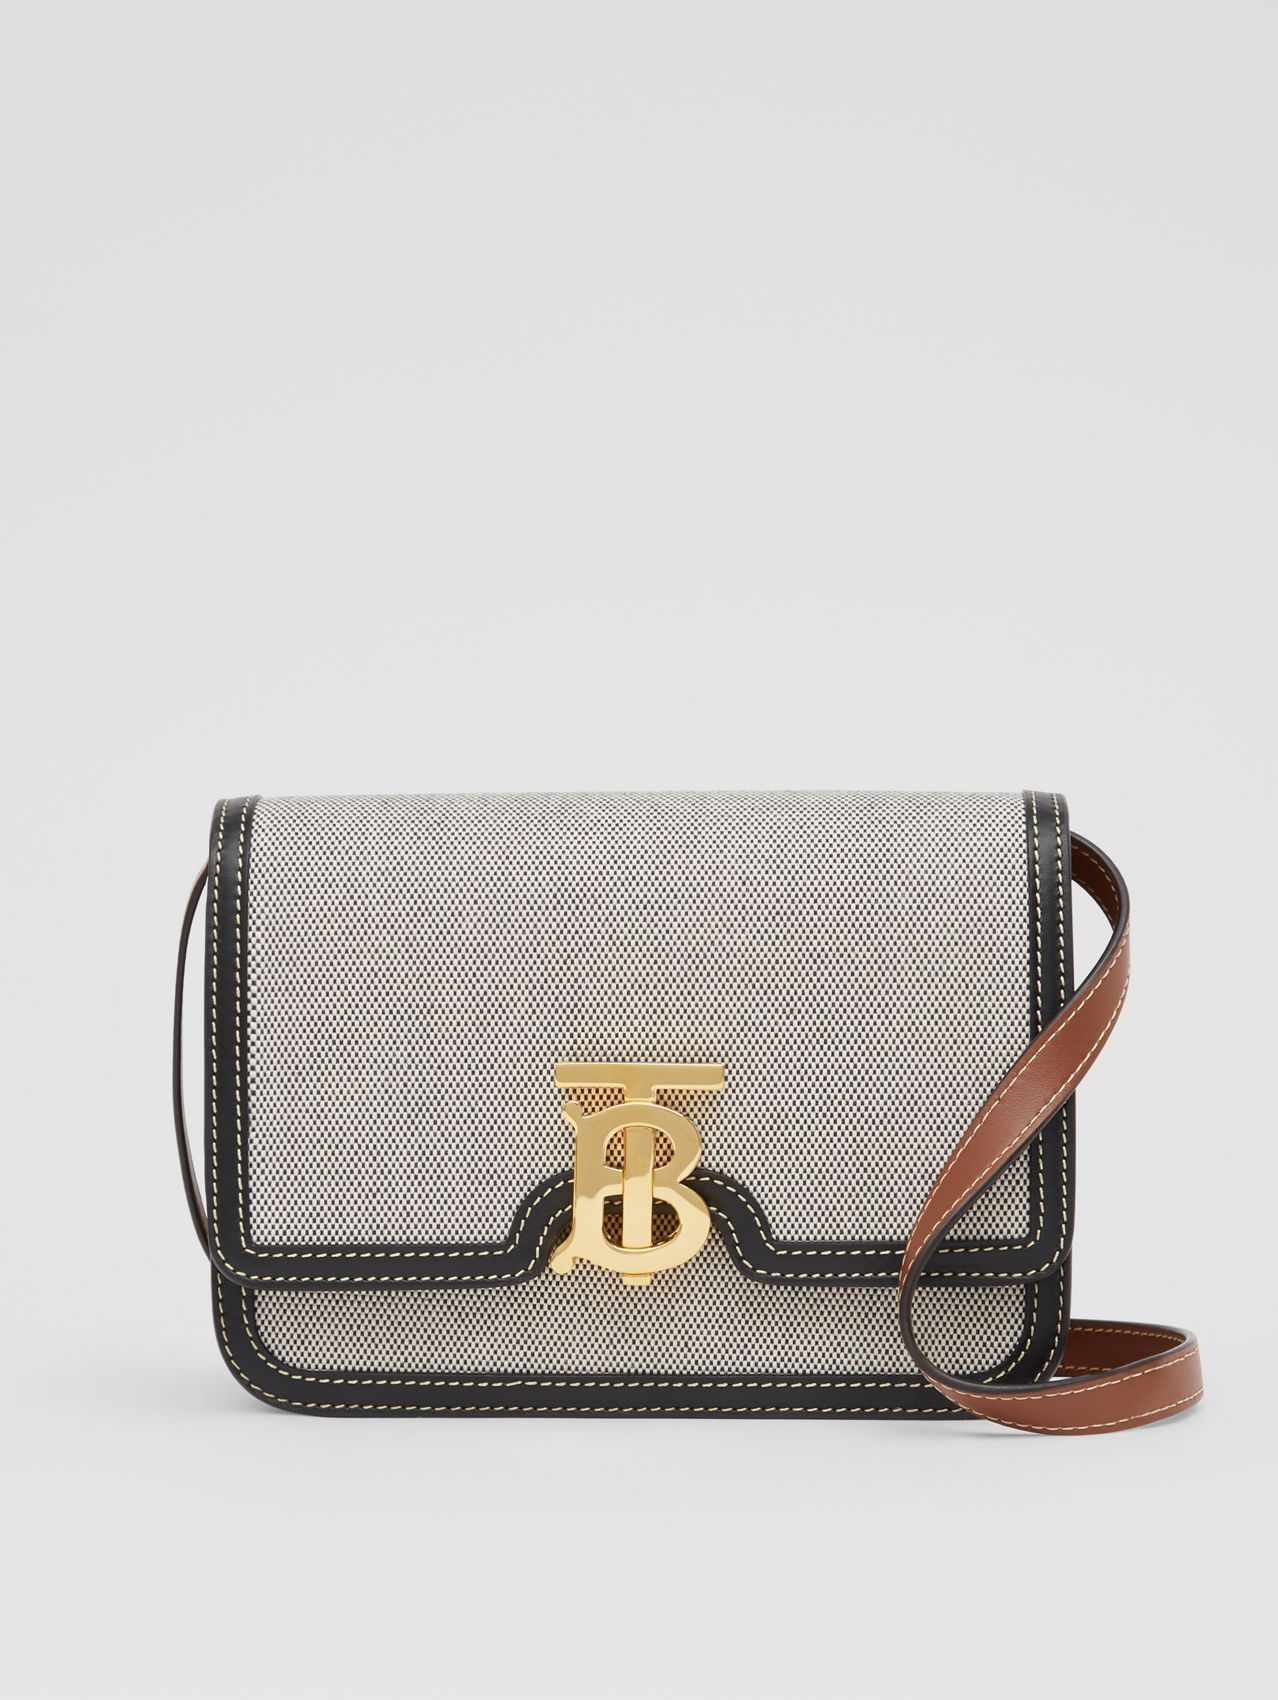 Small Tri-tone Canvas and Leather TB Bag in Black/tan